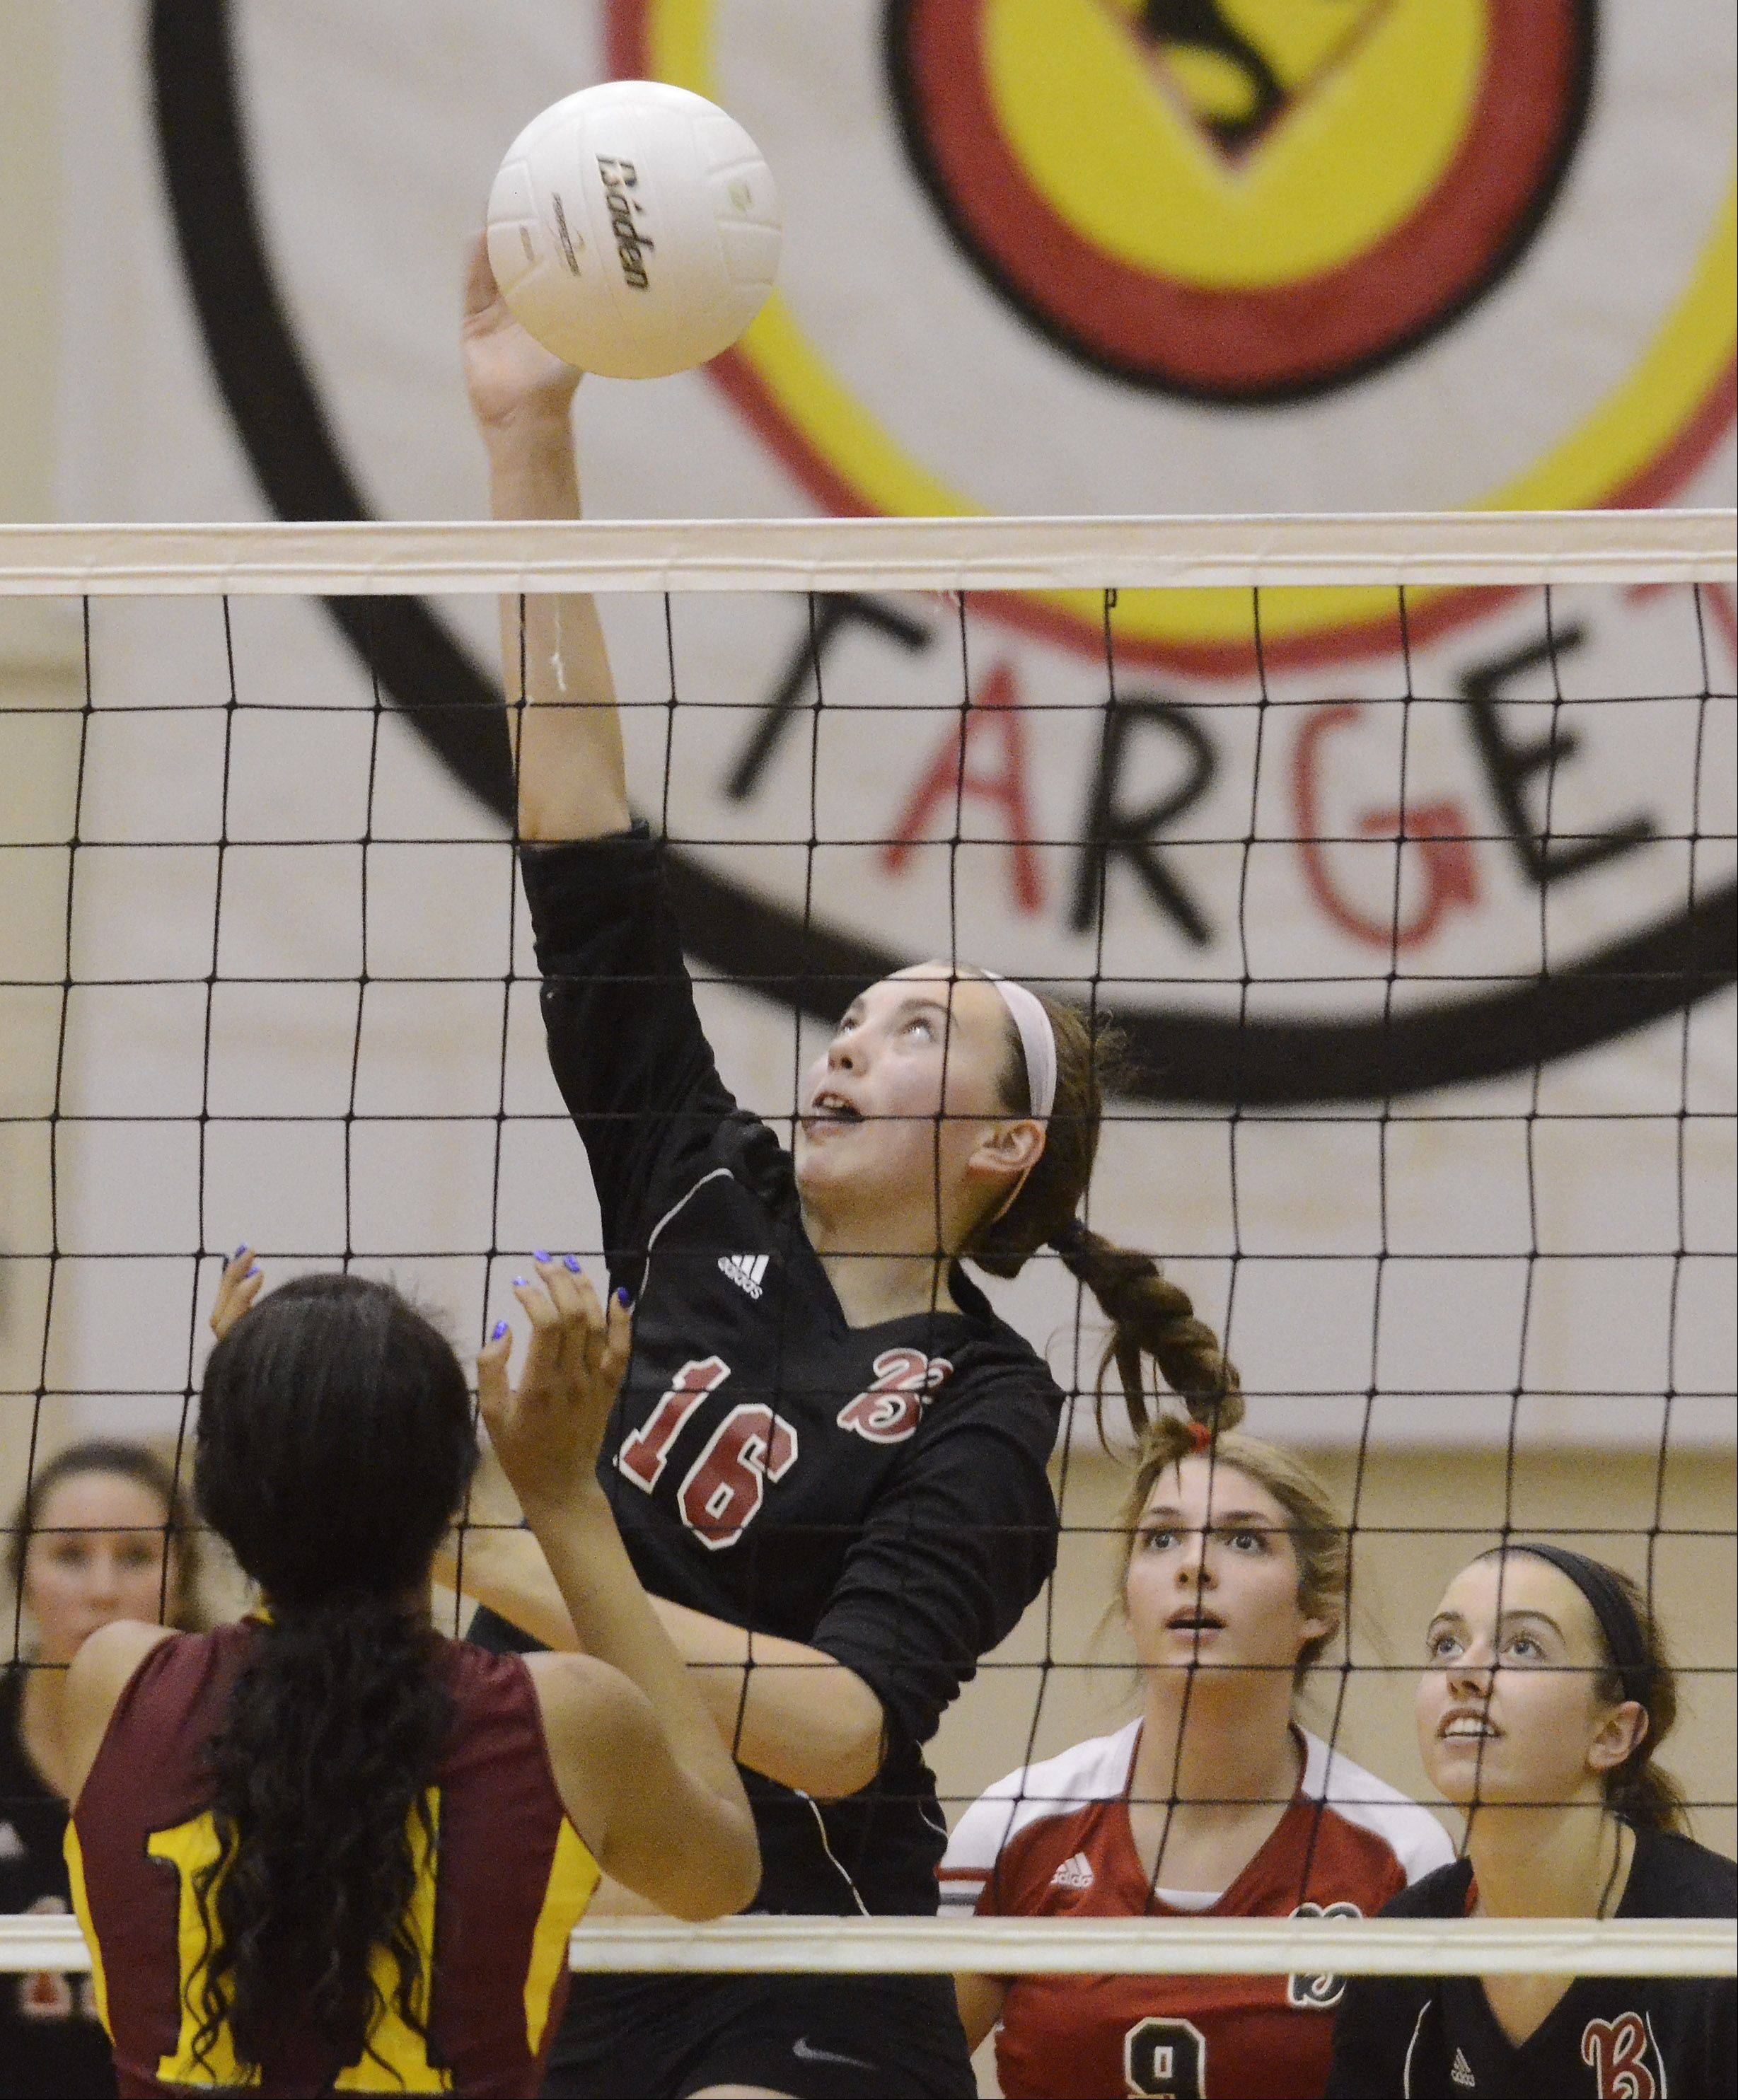 Barrington's Megan Talbot leaps for a kill as Schaumburg's Jada Blackwell stands ready at the net during Thursday's game.